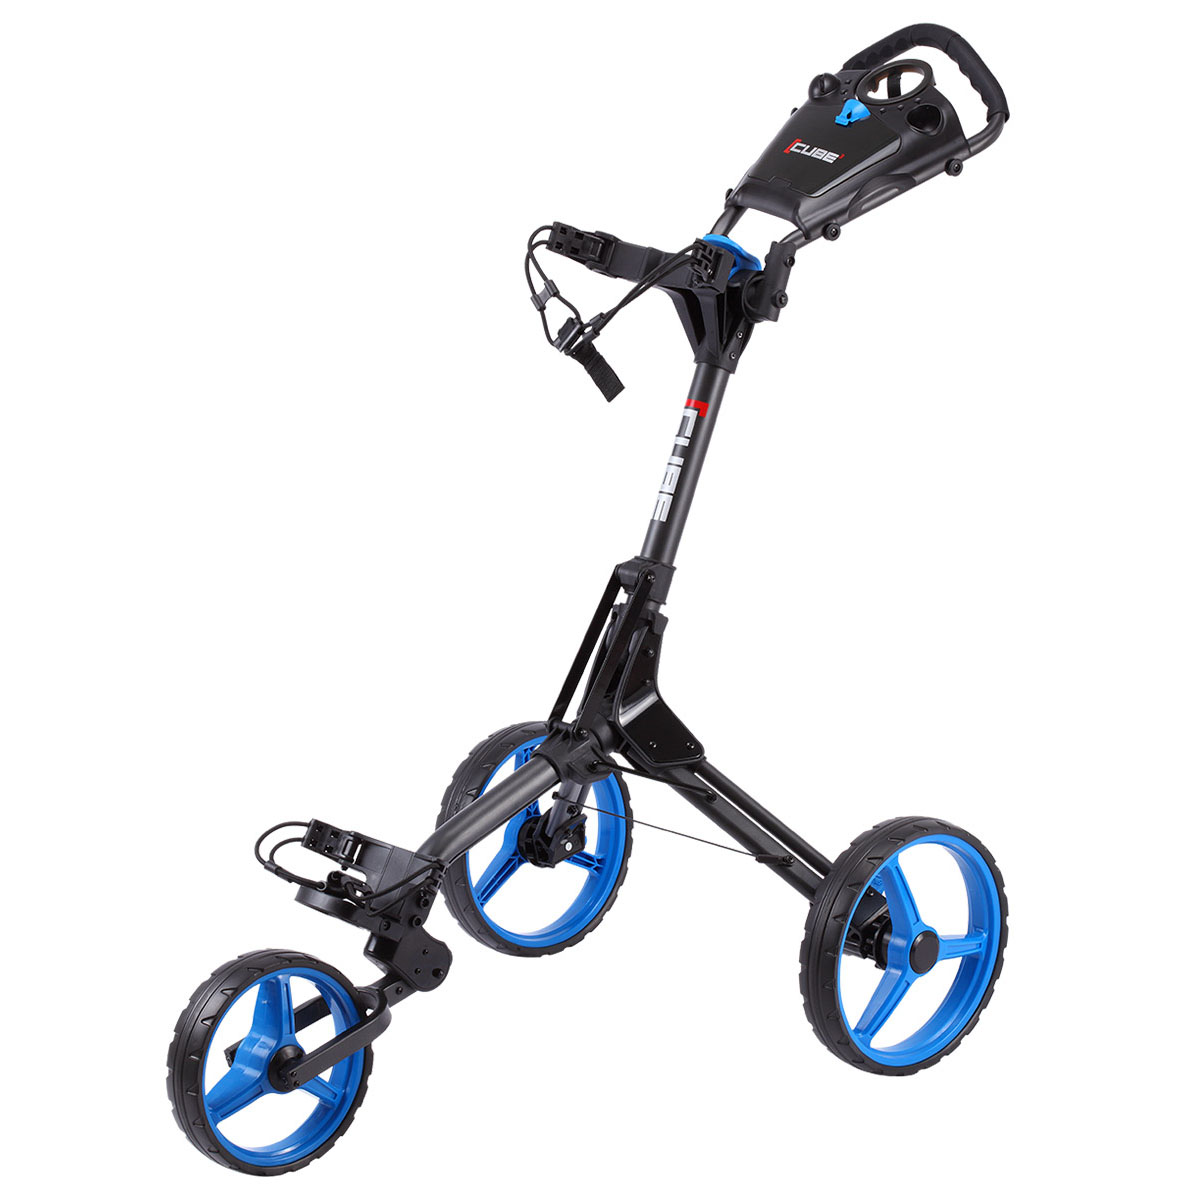 Skymax Golf Cube 3 Push Folding Trolley Compact